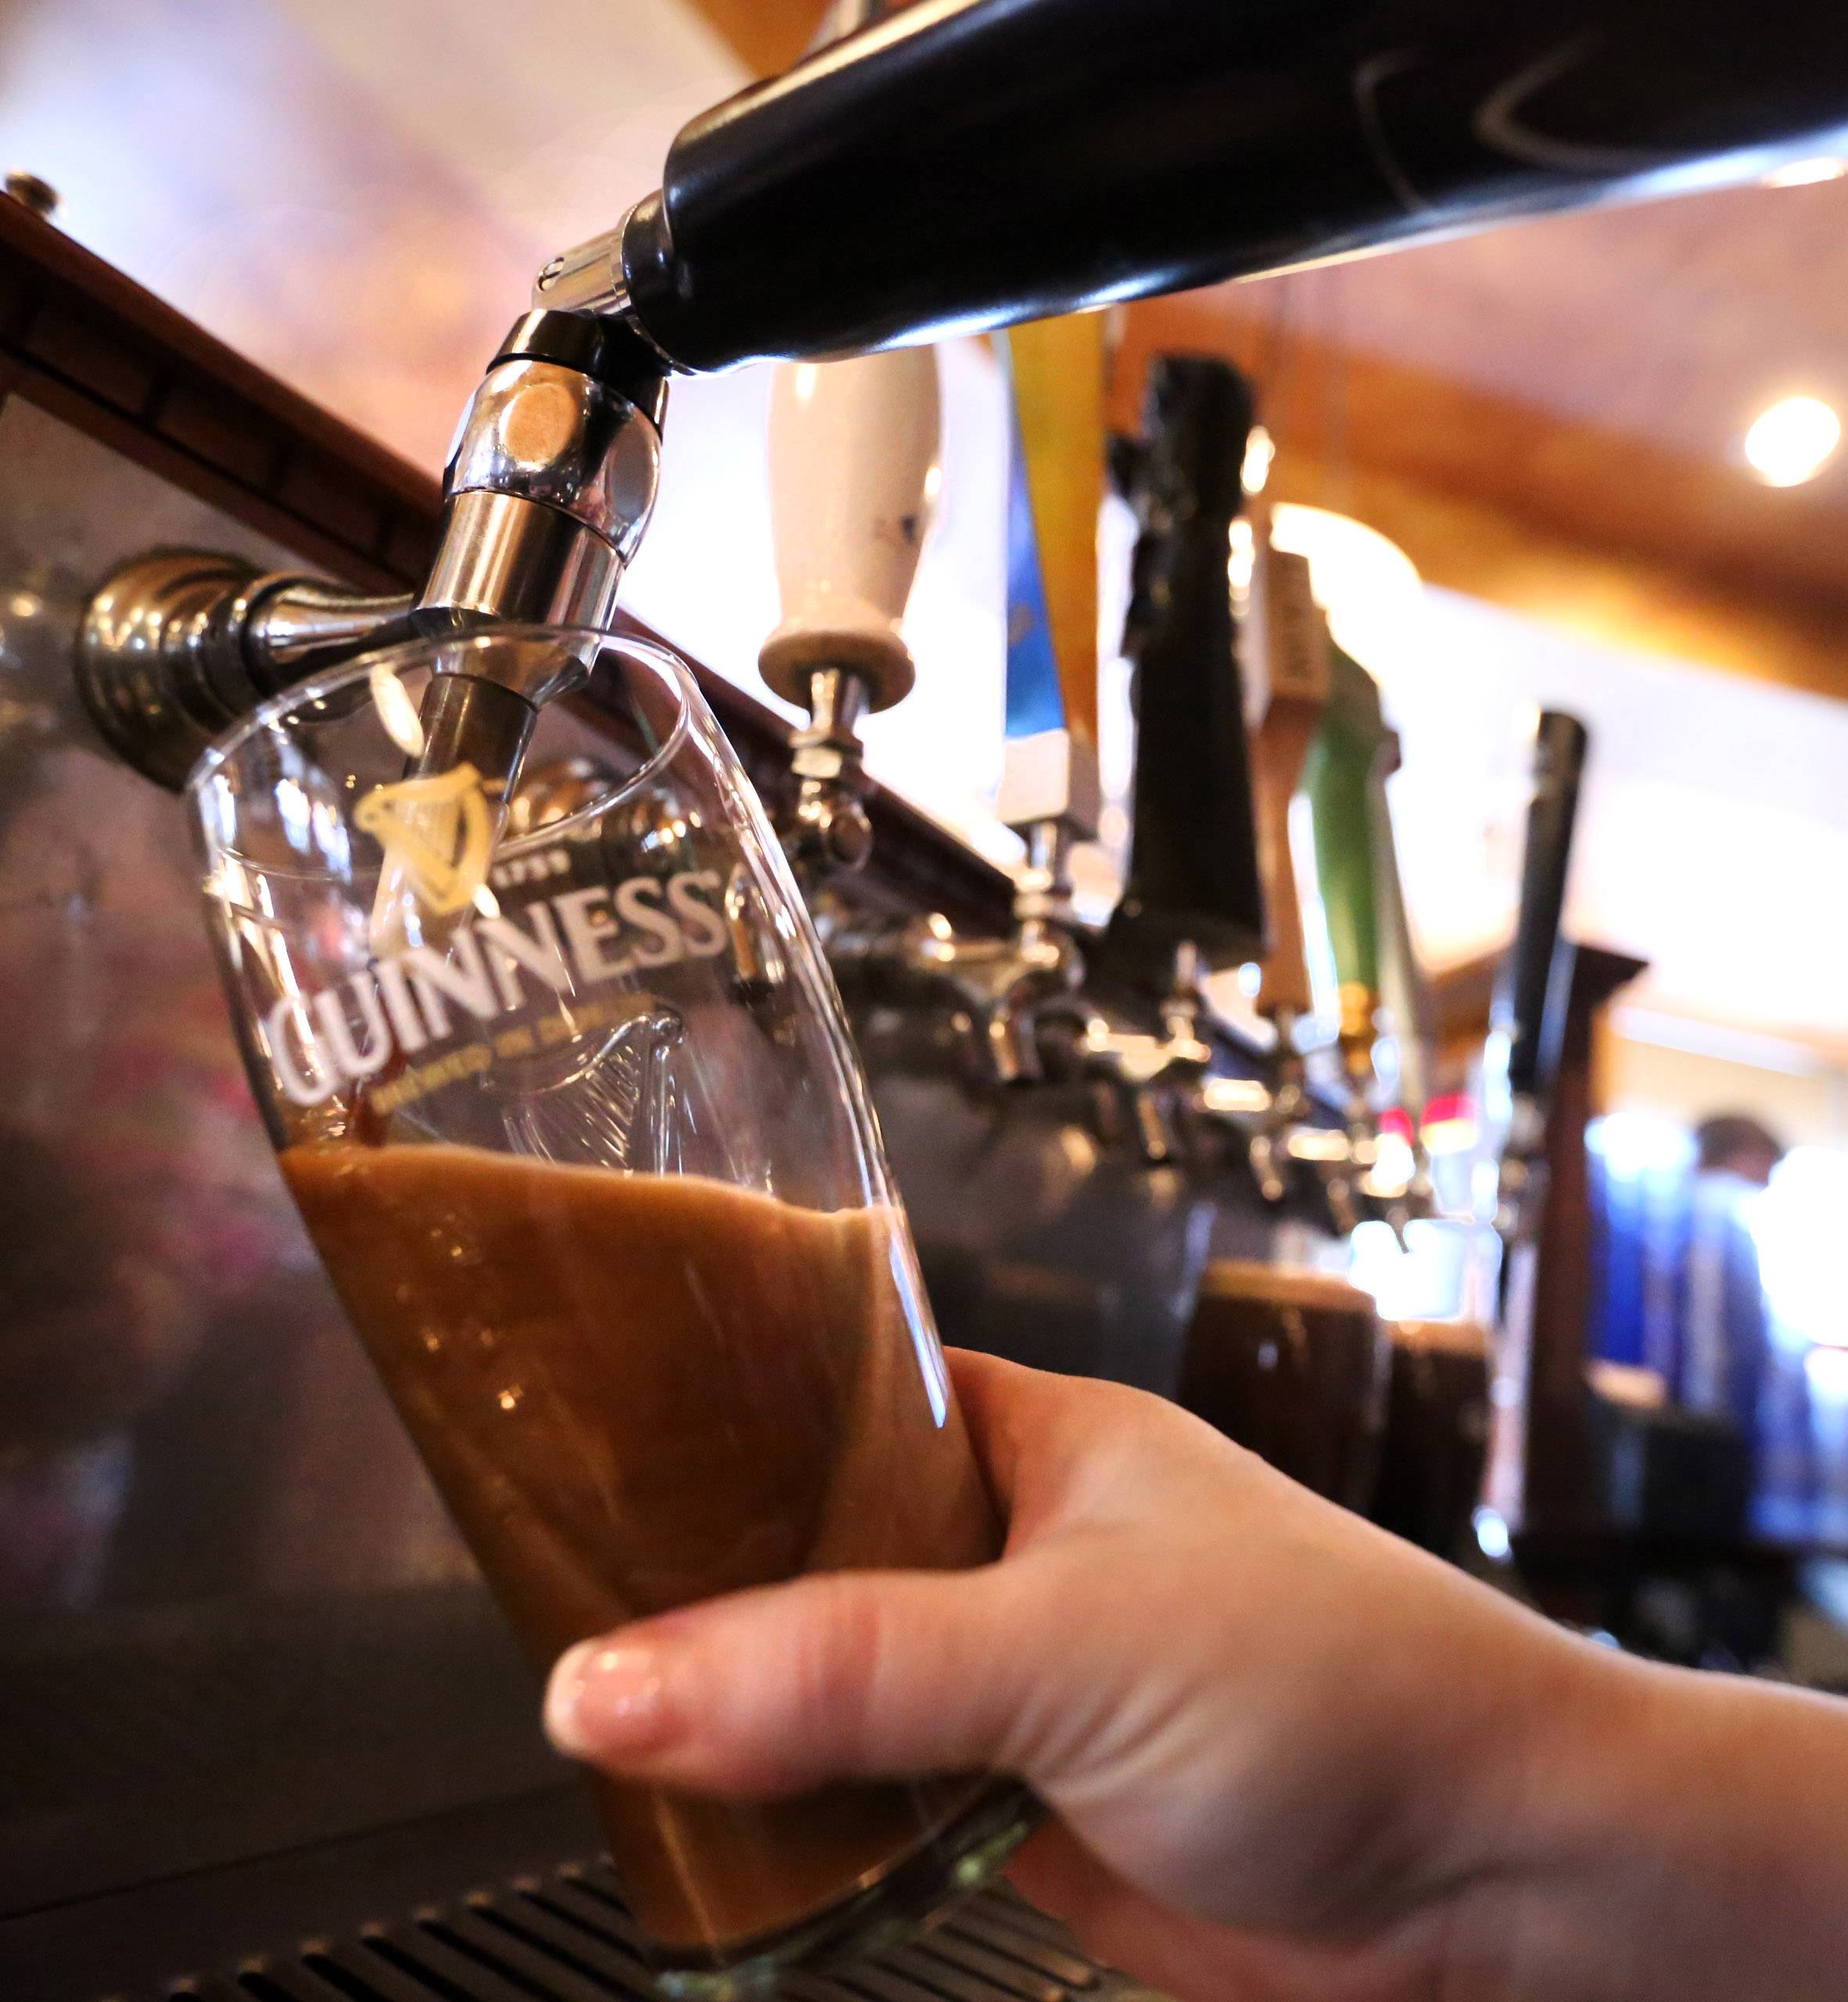 Guinness beer is a St. Patrick's Day tradition at places like Peggy Kinnane's Irish Restaurant & Pub in Arlington Heights.